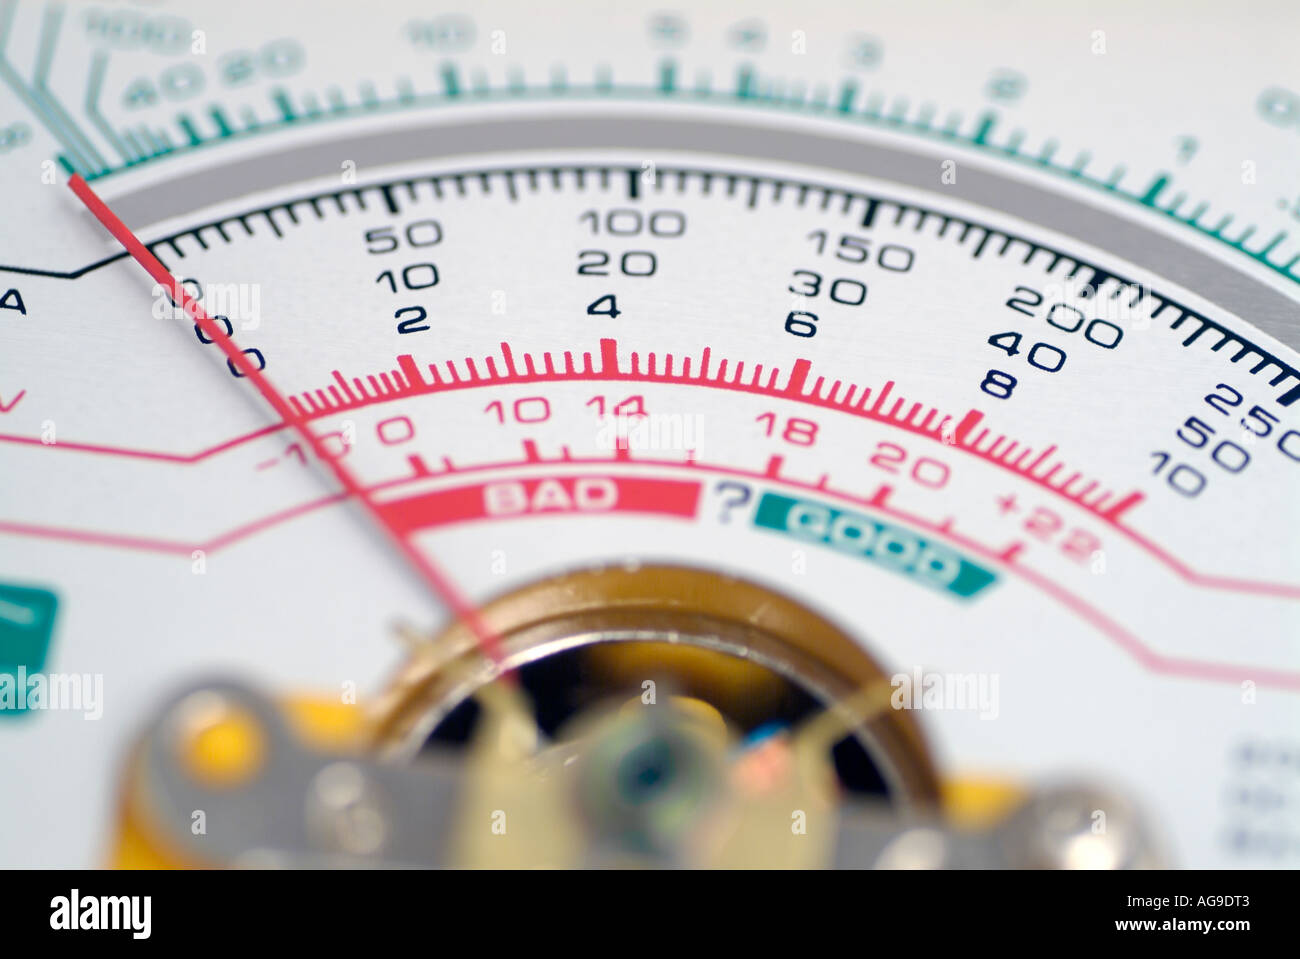 Analogue Needle Display of an Electronic Multimeter - Stock Image